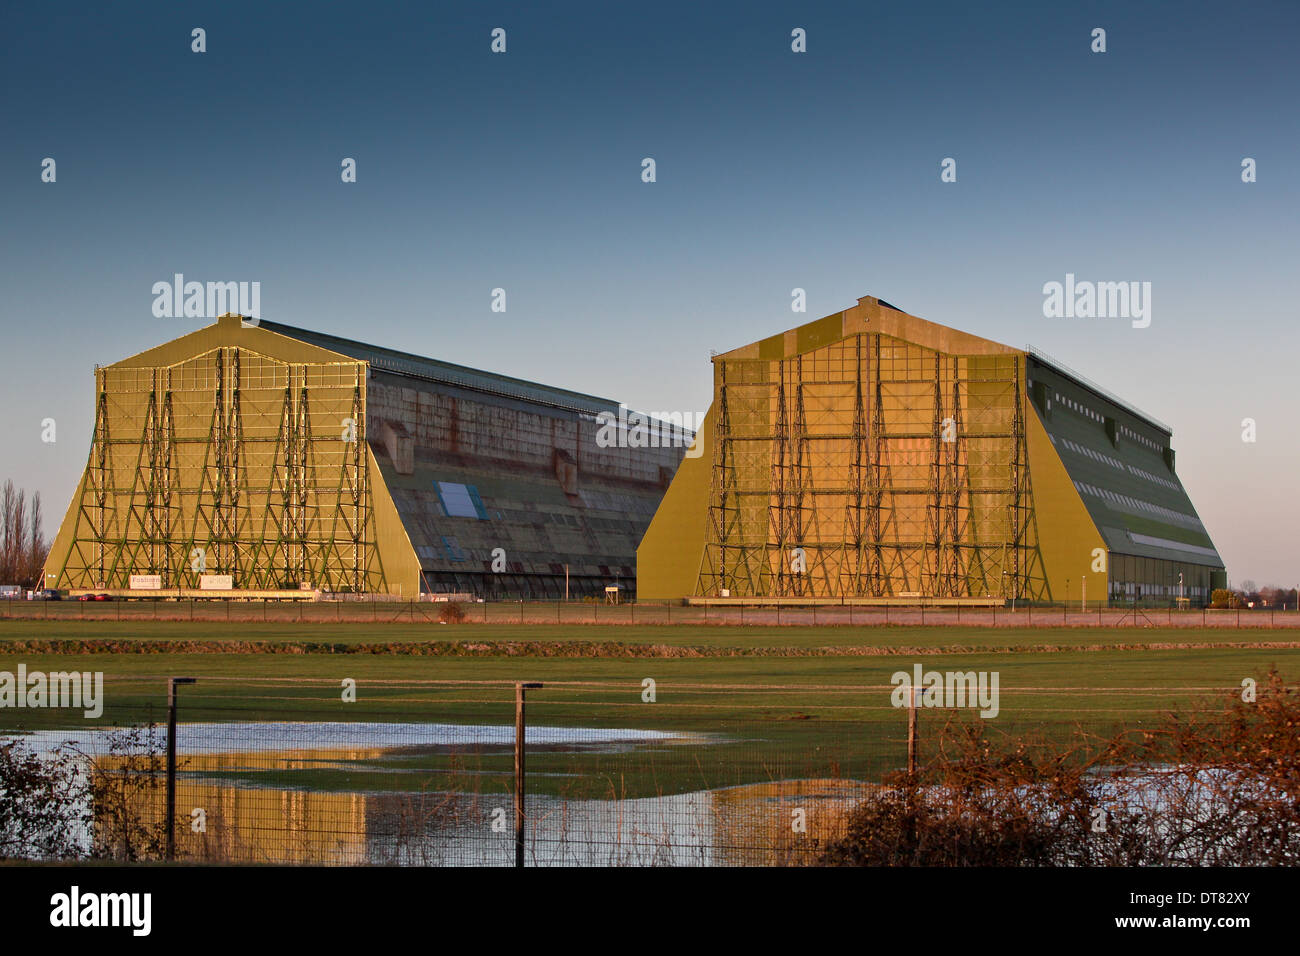 The iconic hangars at Cardington,Bedfordshire.home to the ill fated R101 airship Stock Photo